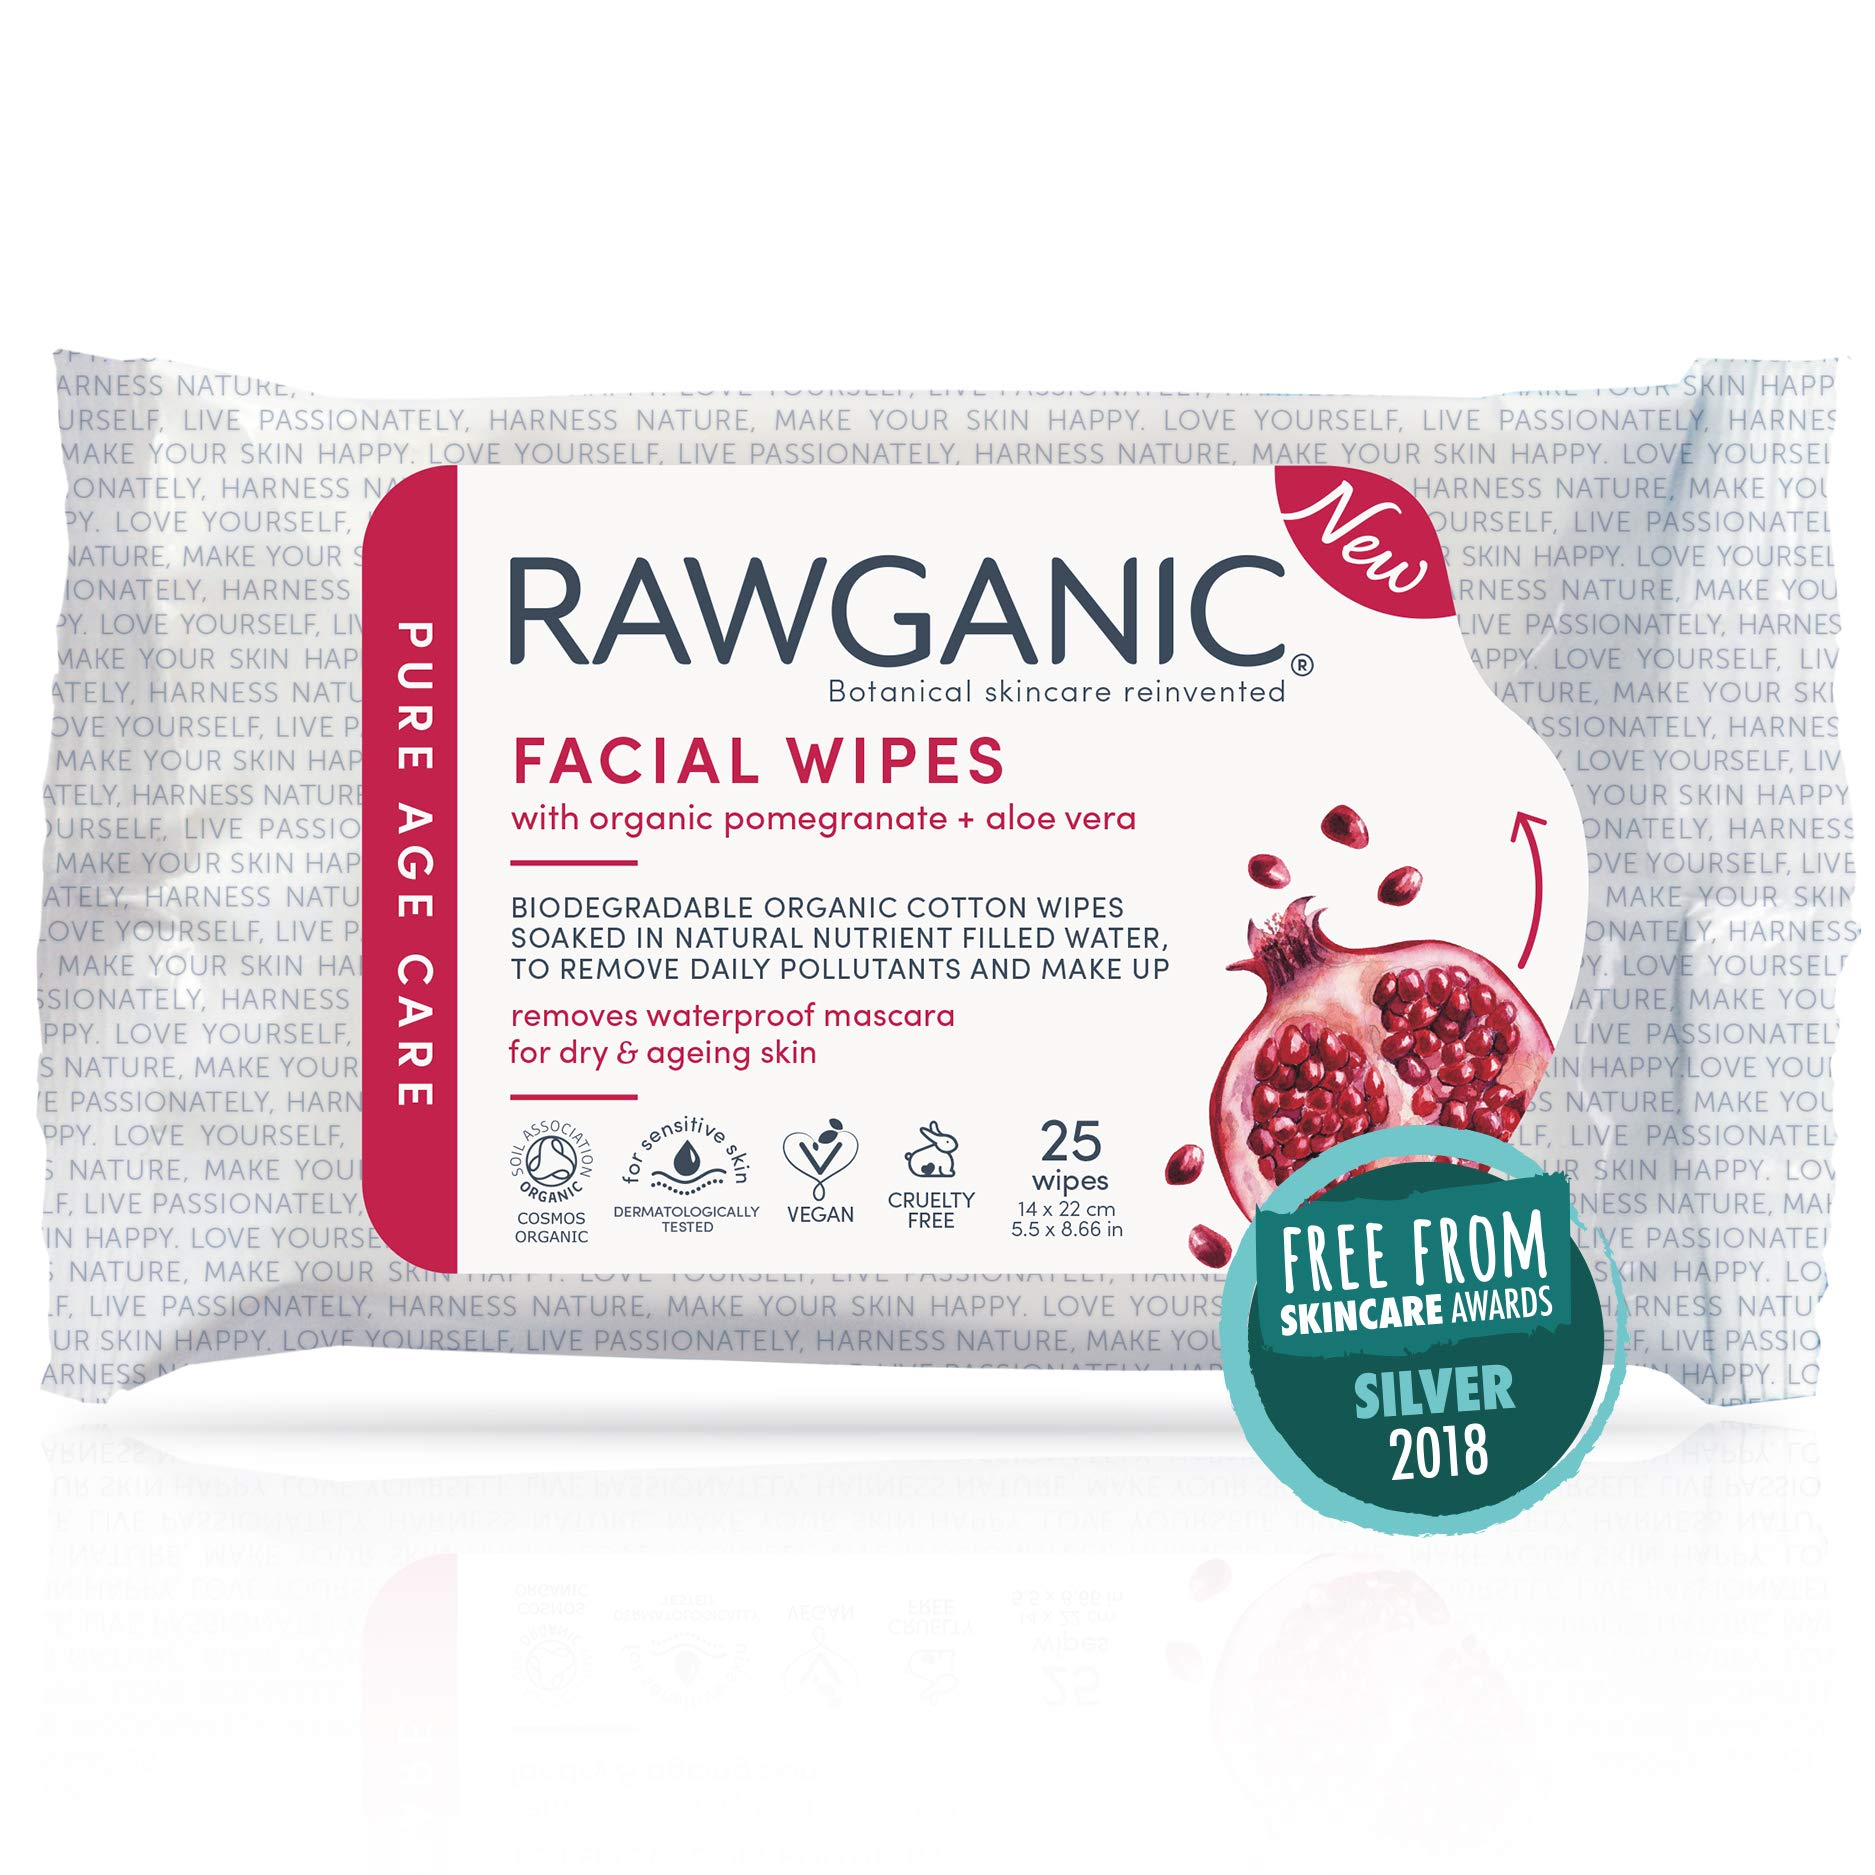 Rawganic Anti-aging Hydrating Facial wipes, Fragrance-free Biodegradable Organic Cotton Wipes with Pomegranate and Aloe Vera (25 wipes/pack)